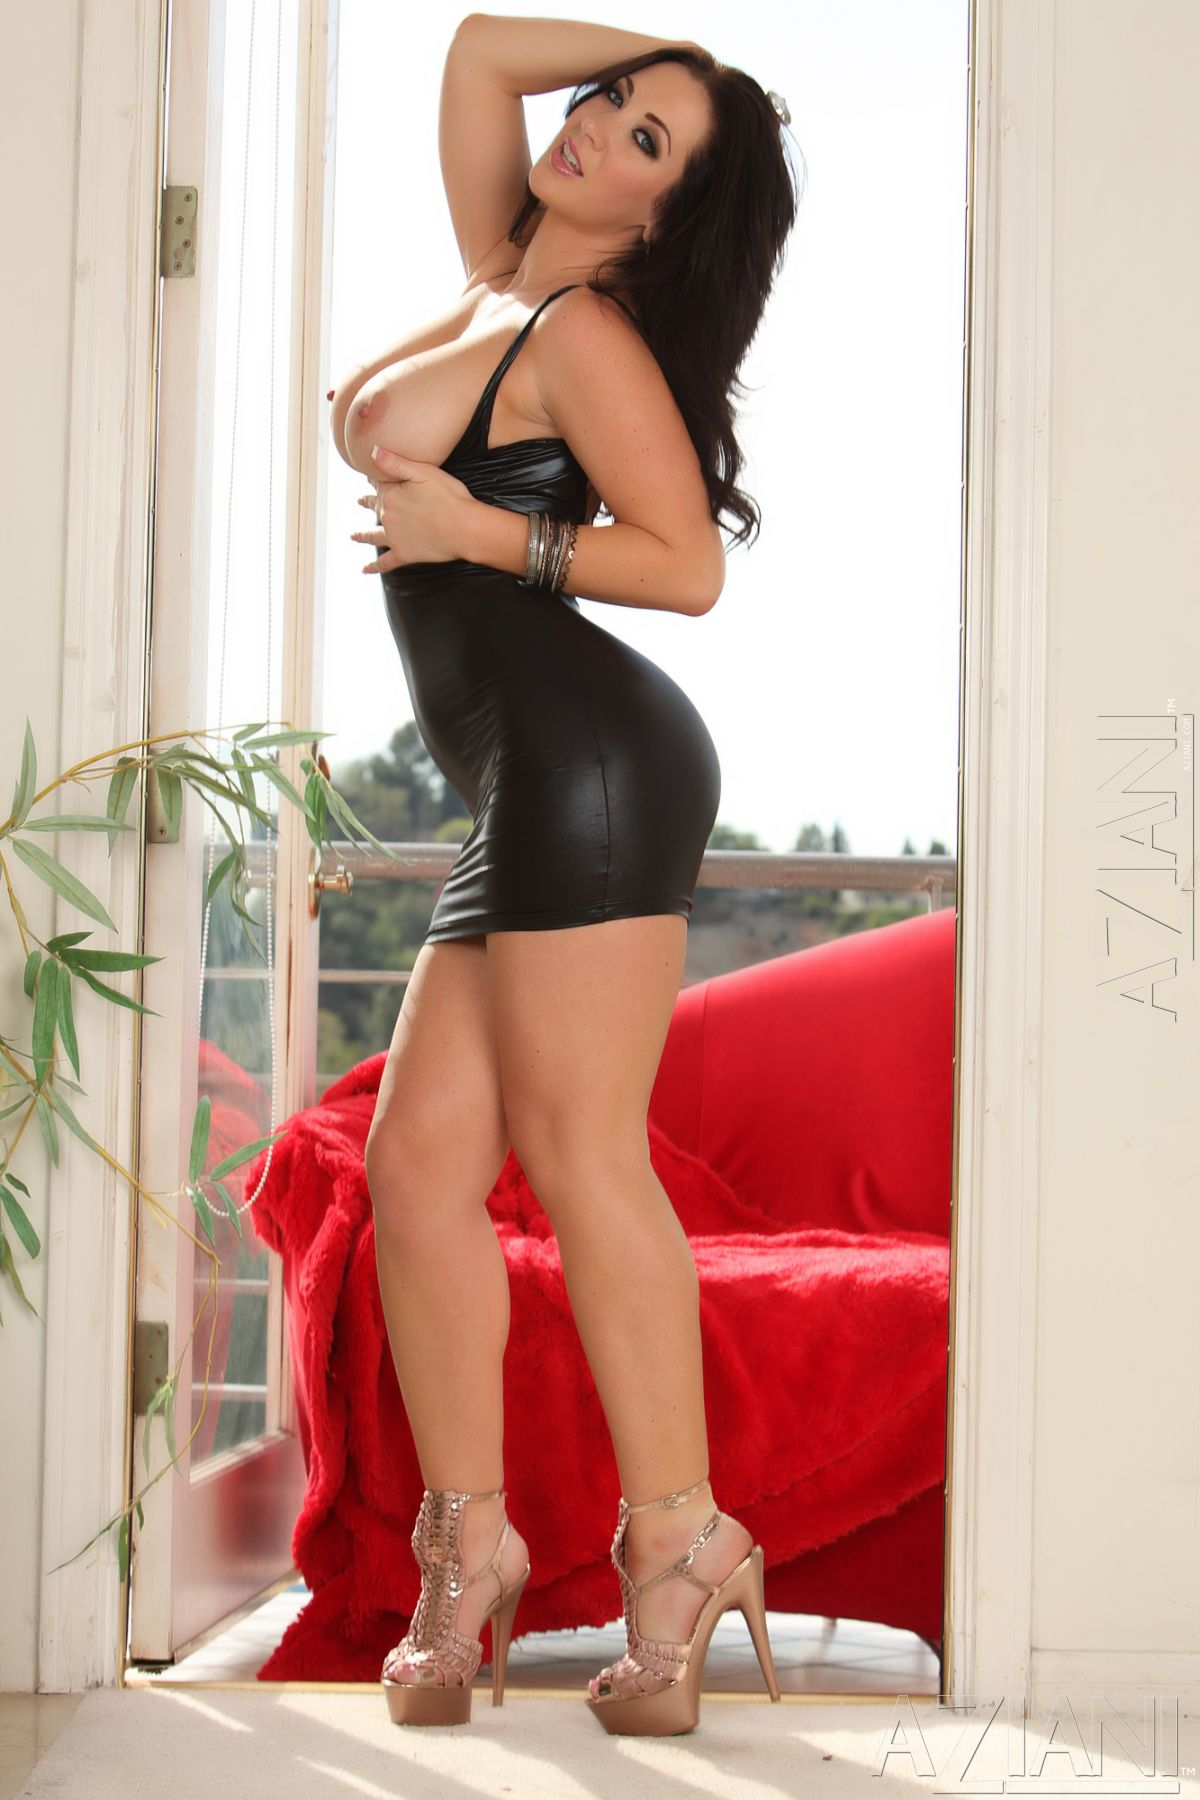 Джейден Джеймс, фото 39. Jayden Jaymes Posing in a Black Wetlook Dress, foto 39